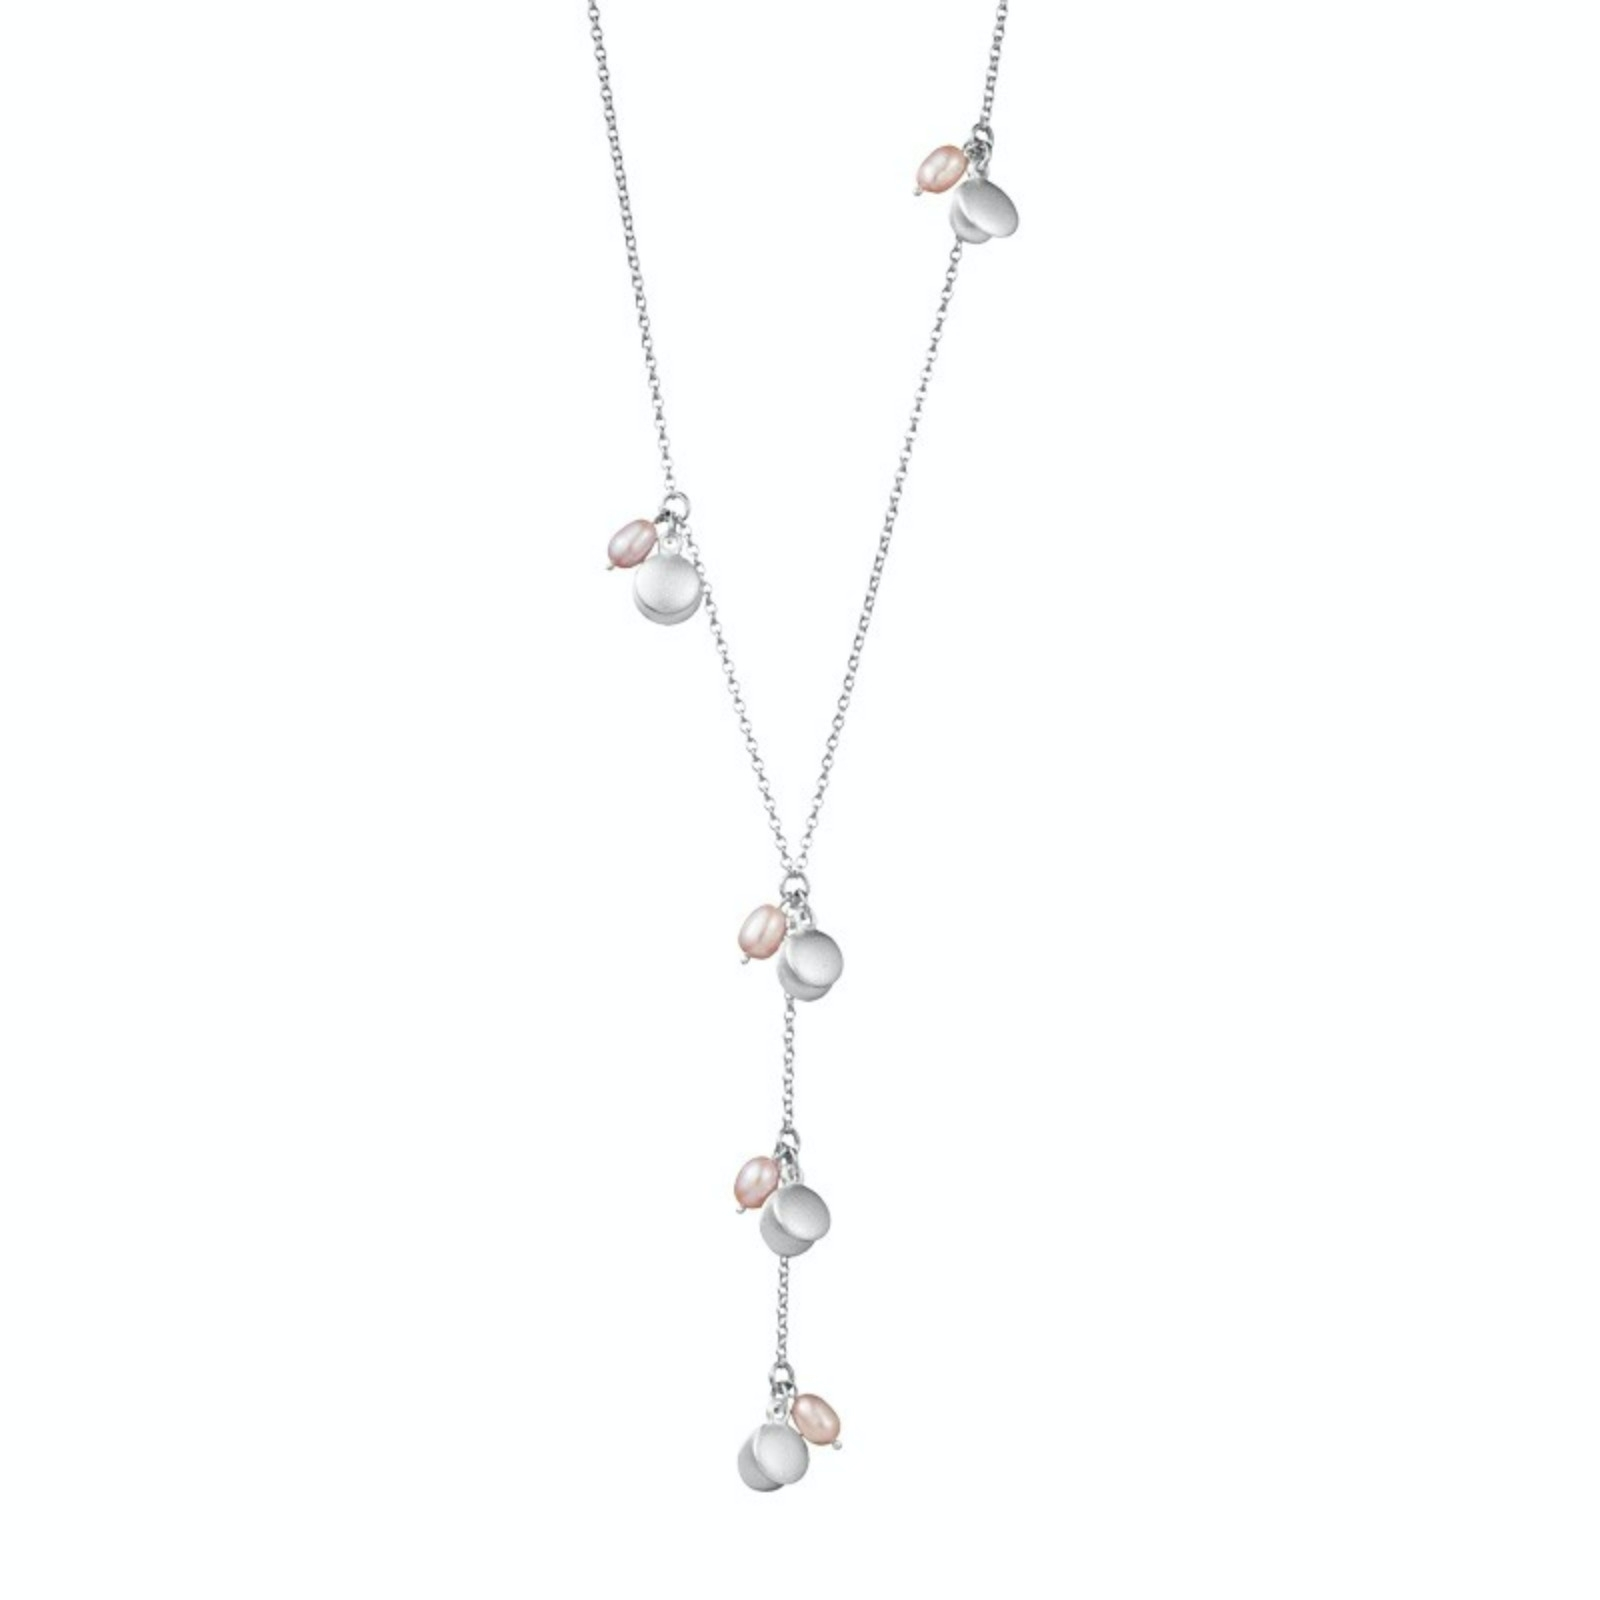 PINK RIBBON 2019 NECKLACE